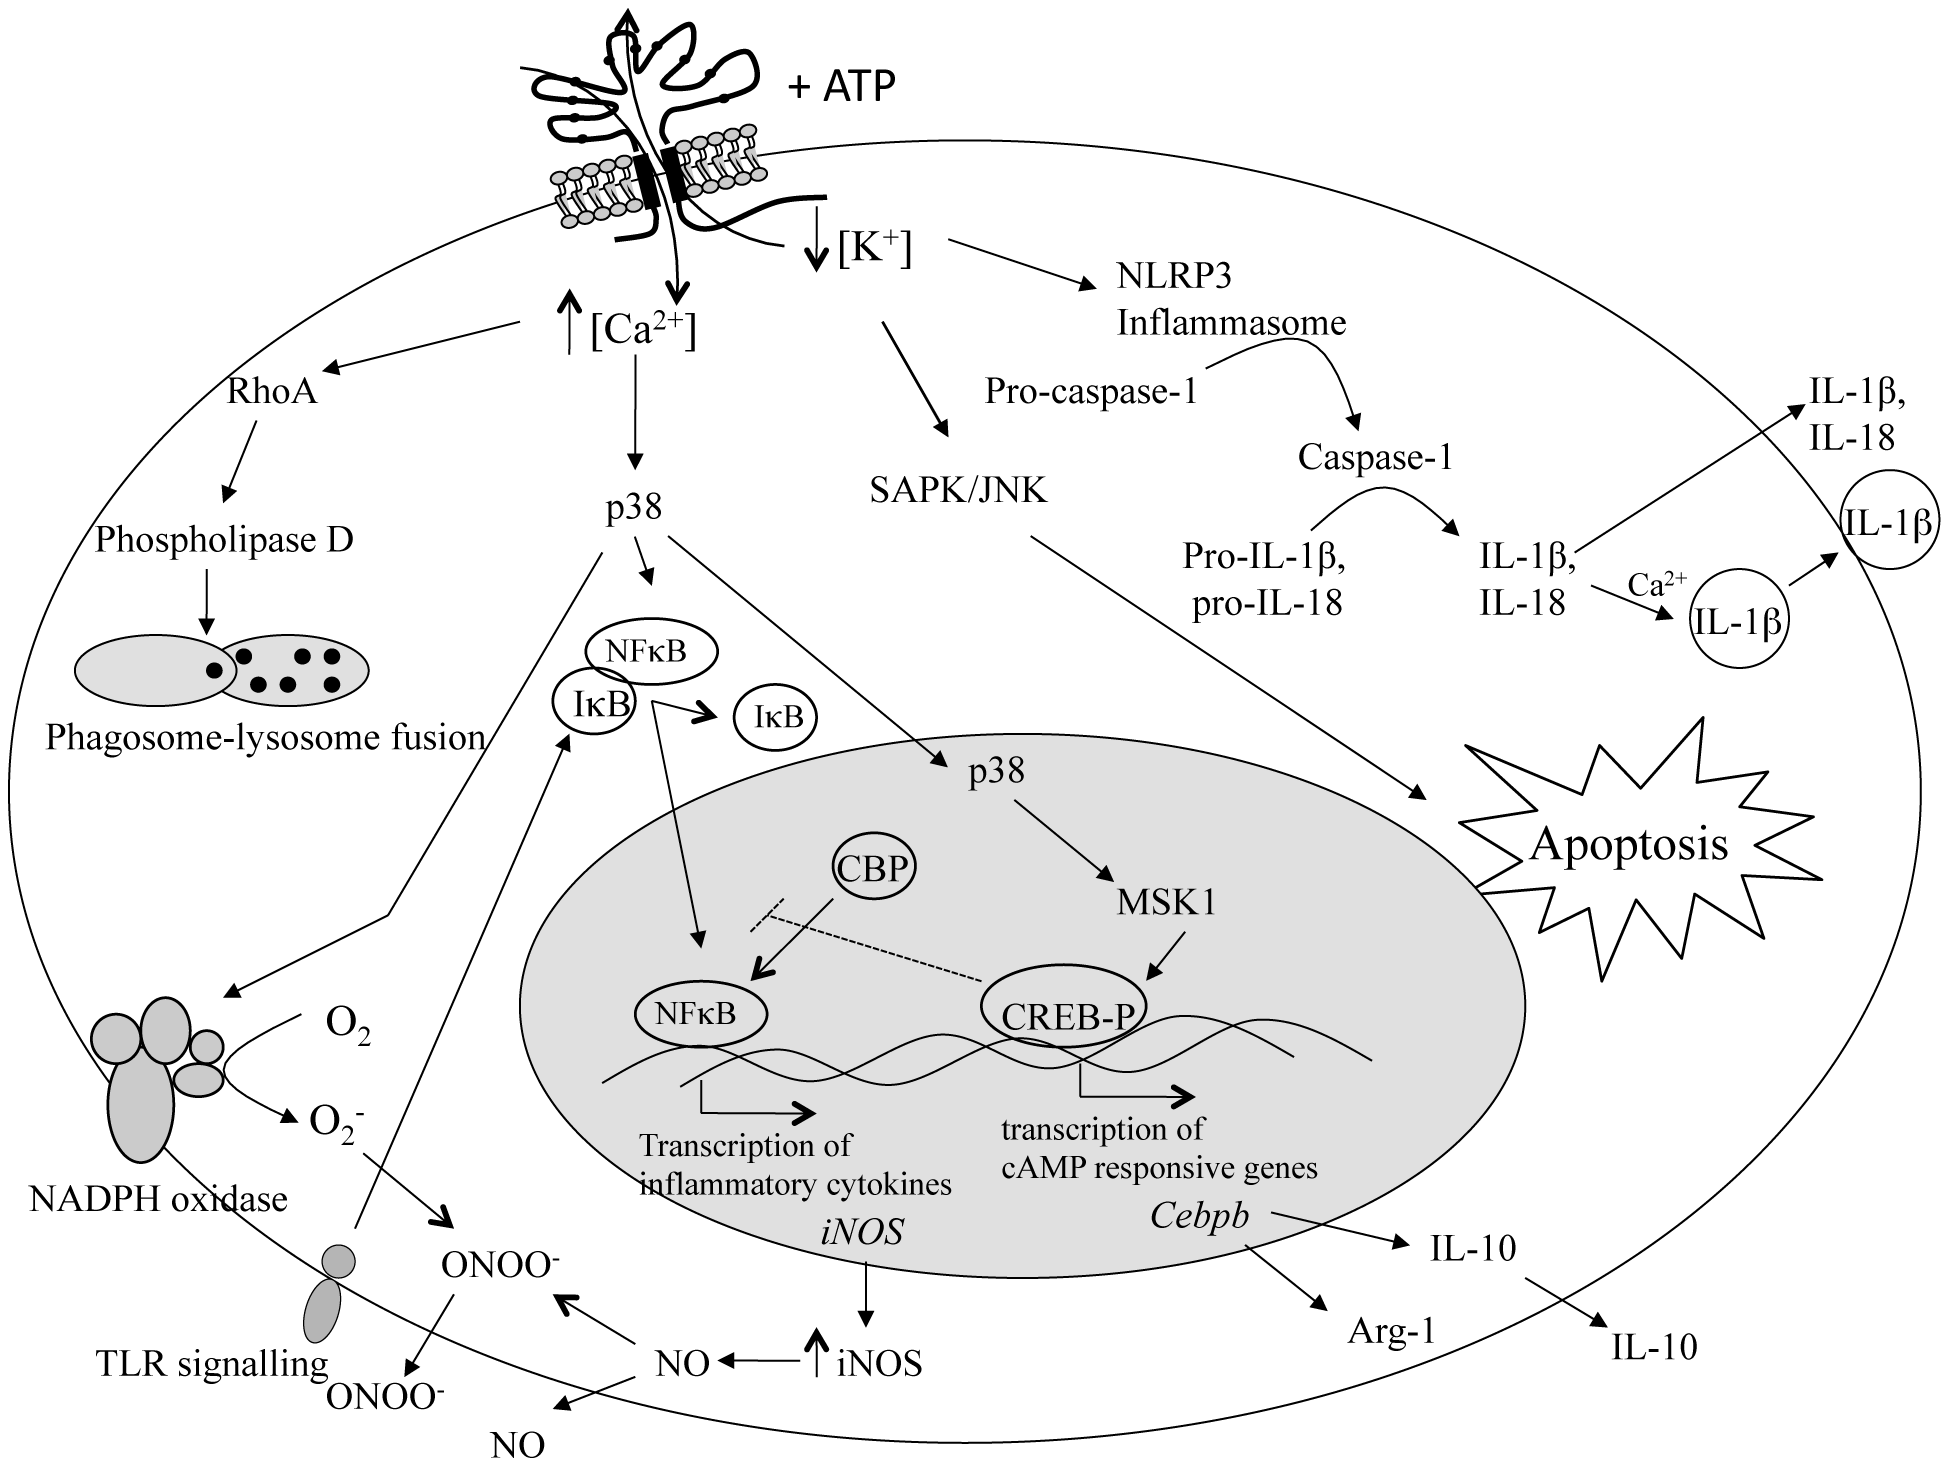 Intracellular pathways in immune cells stimulated by P2X<sub>7</sub> receptor activation.